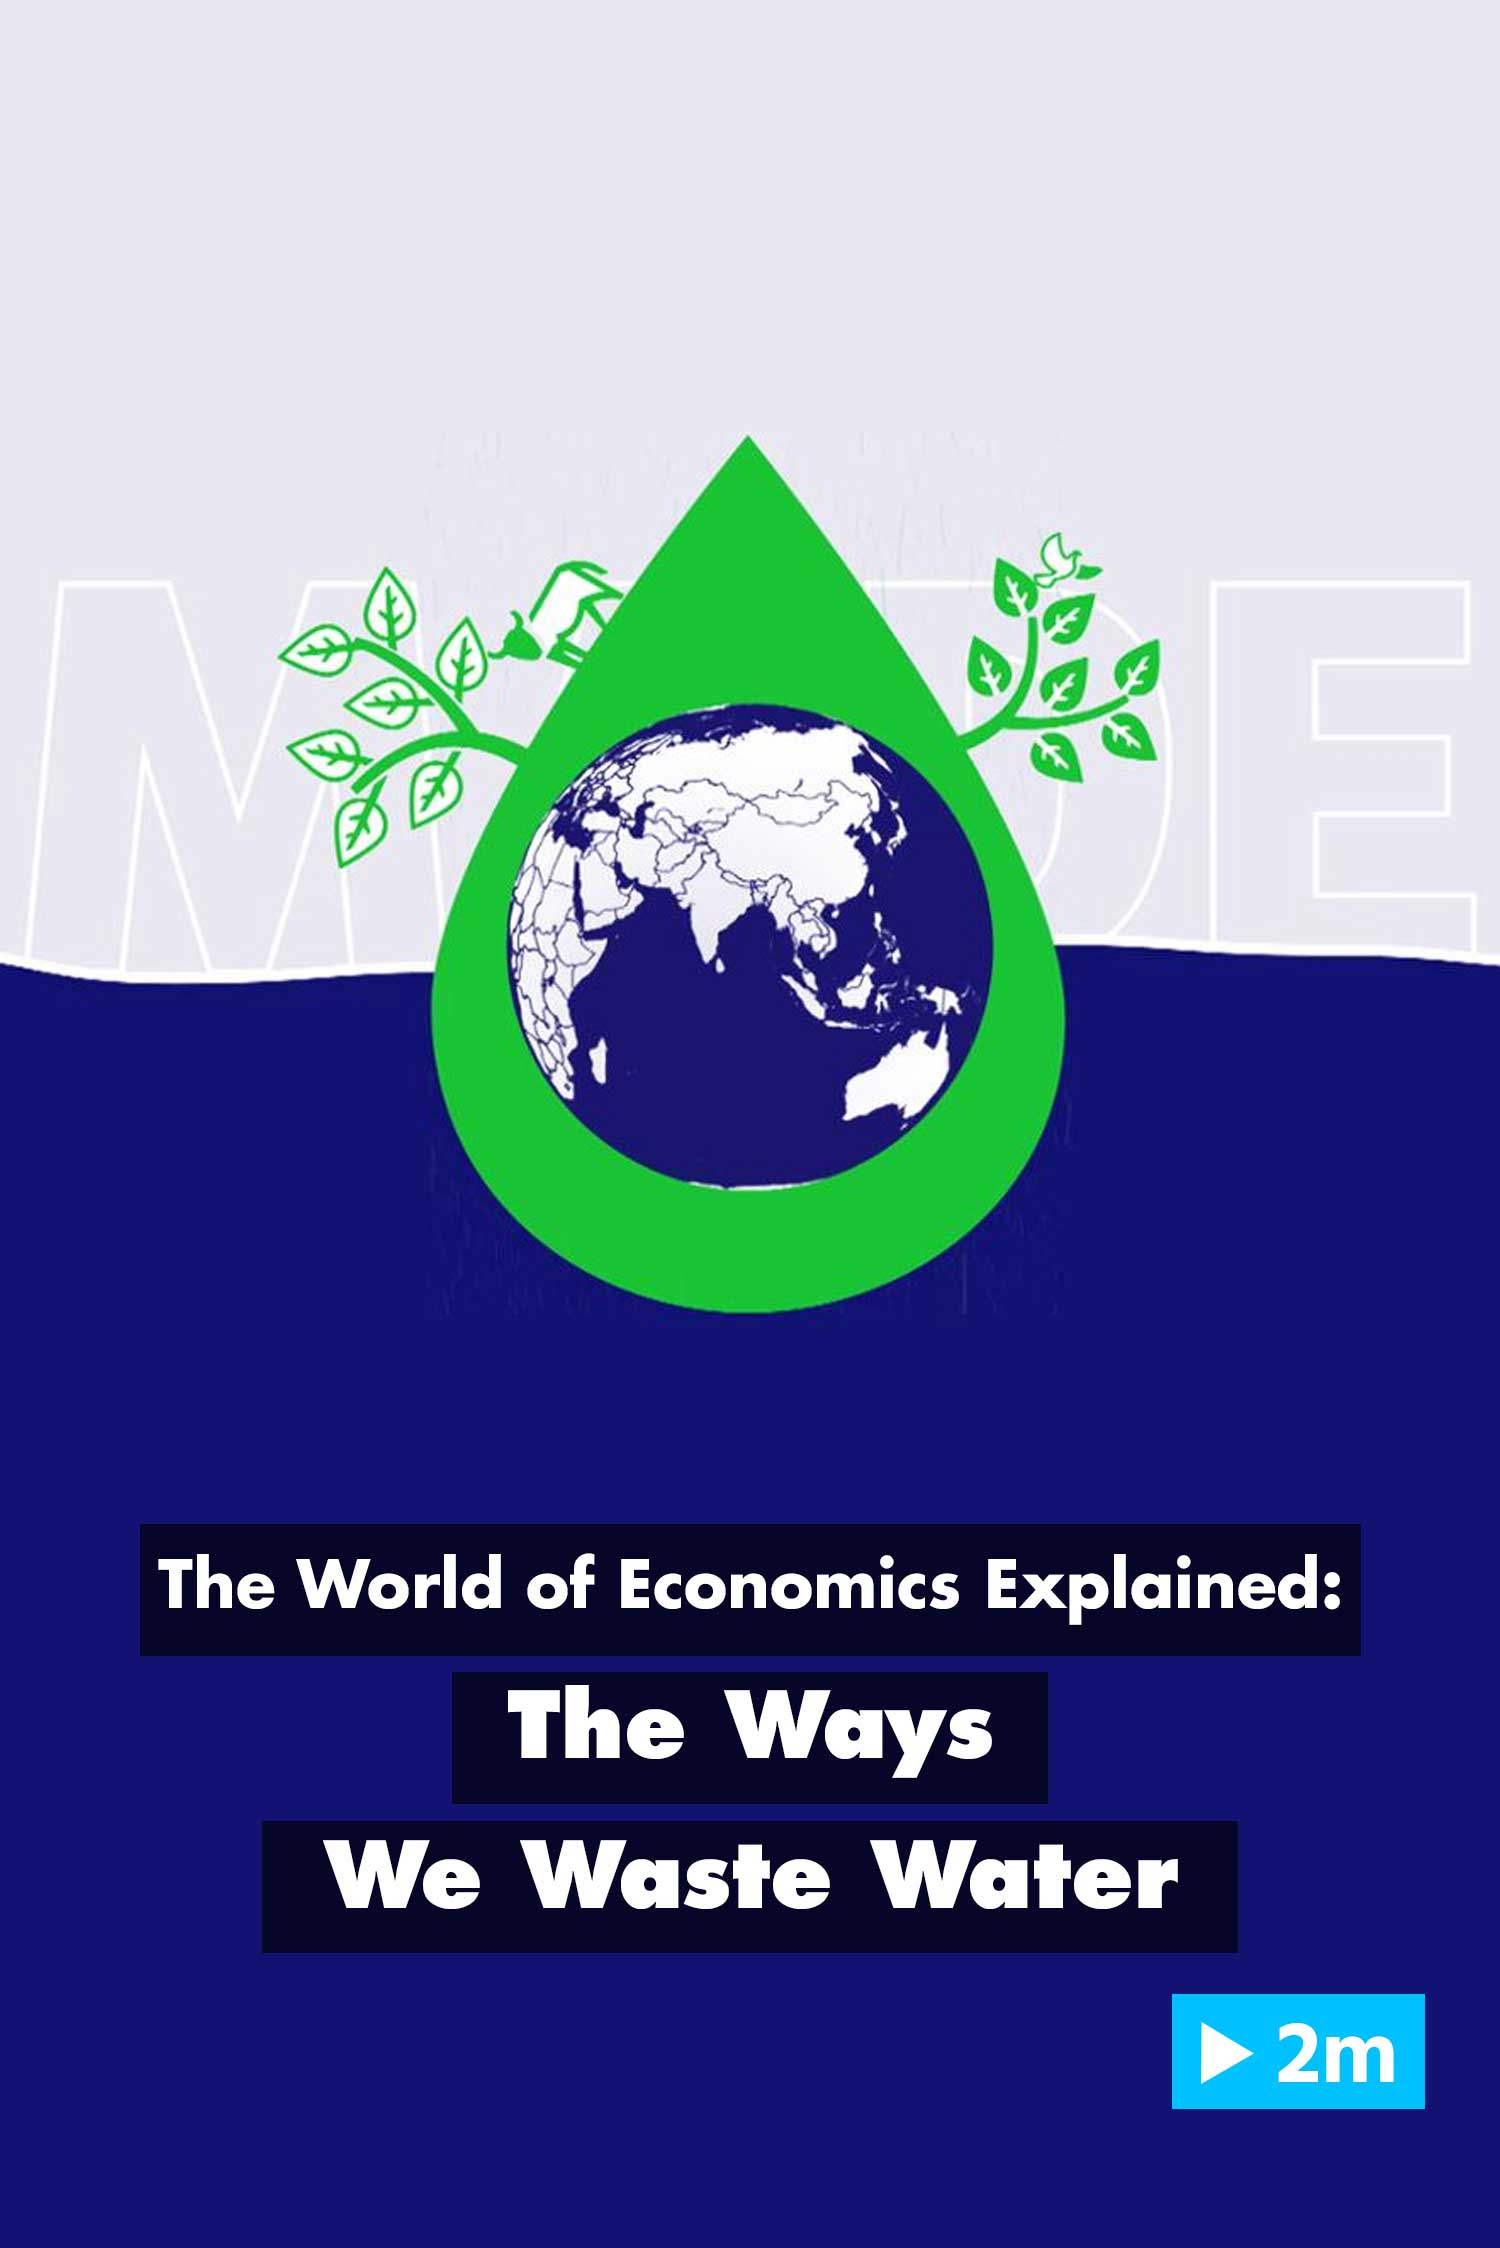 The World of Economics Explained: The Ways We Waste Water